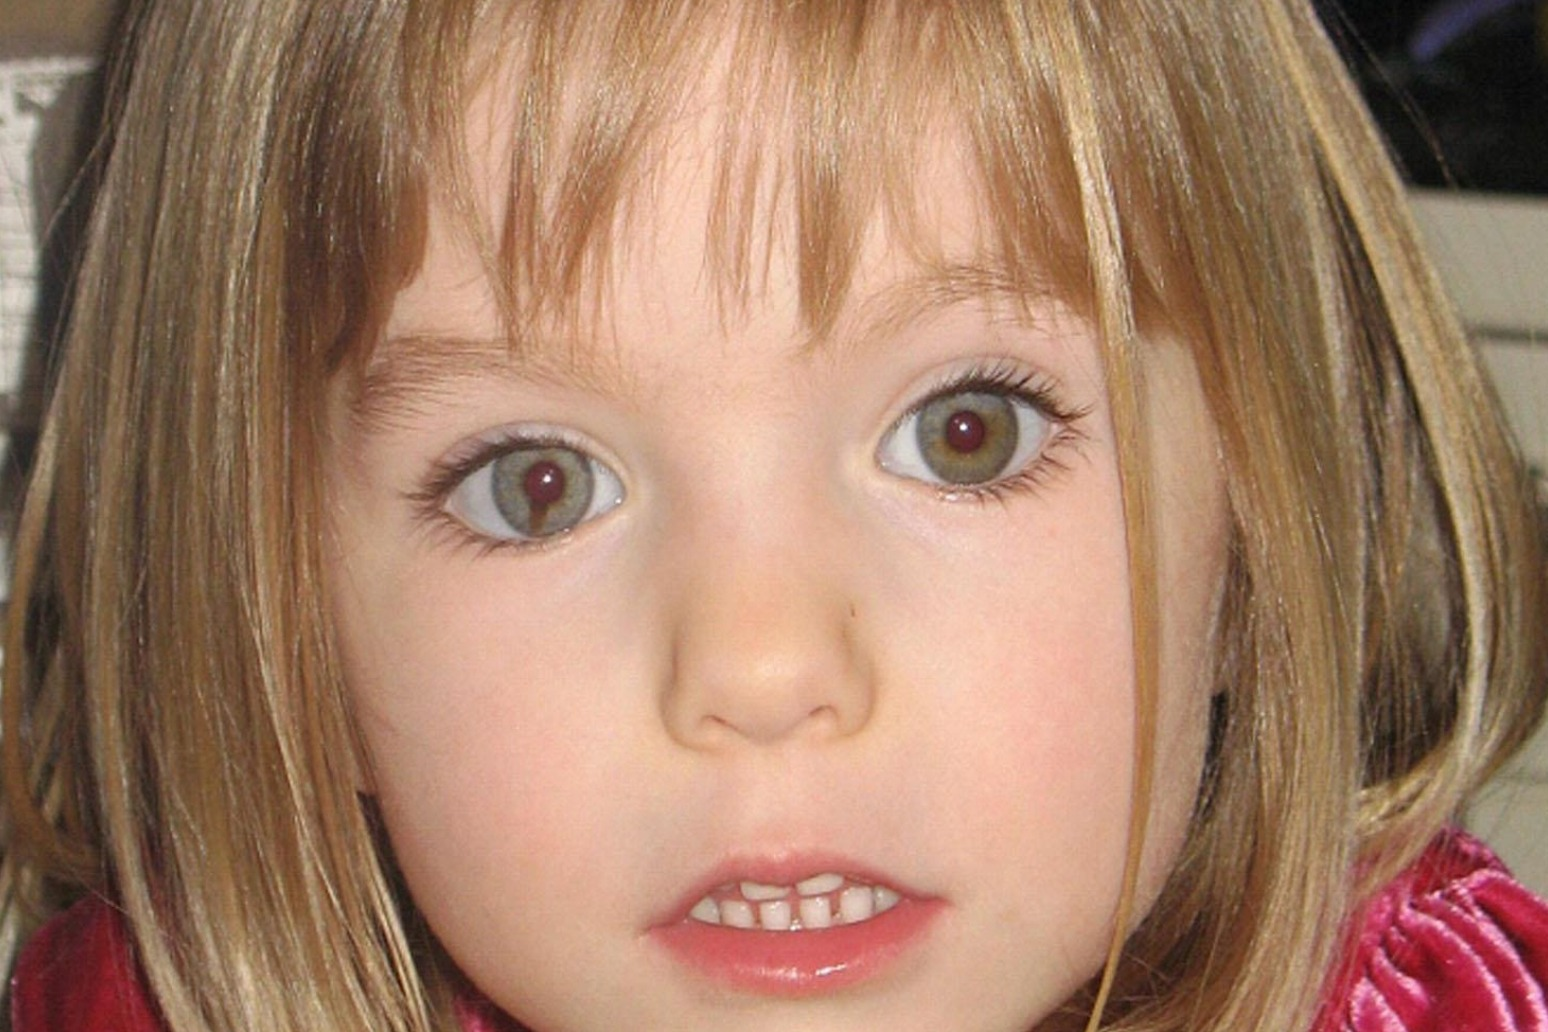 Police search German garden in connection with Madeleine McCann disappearance